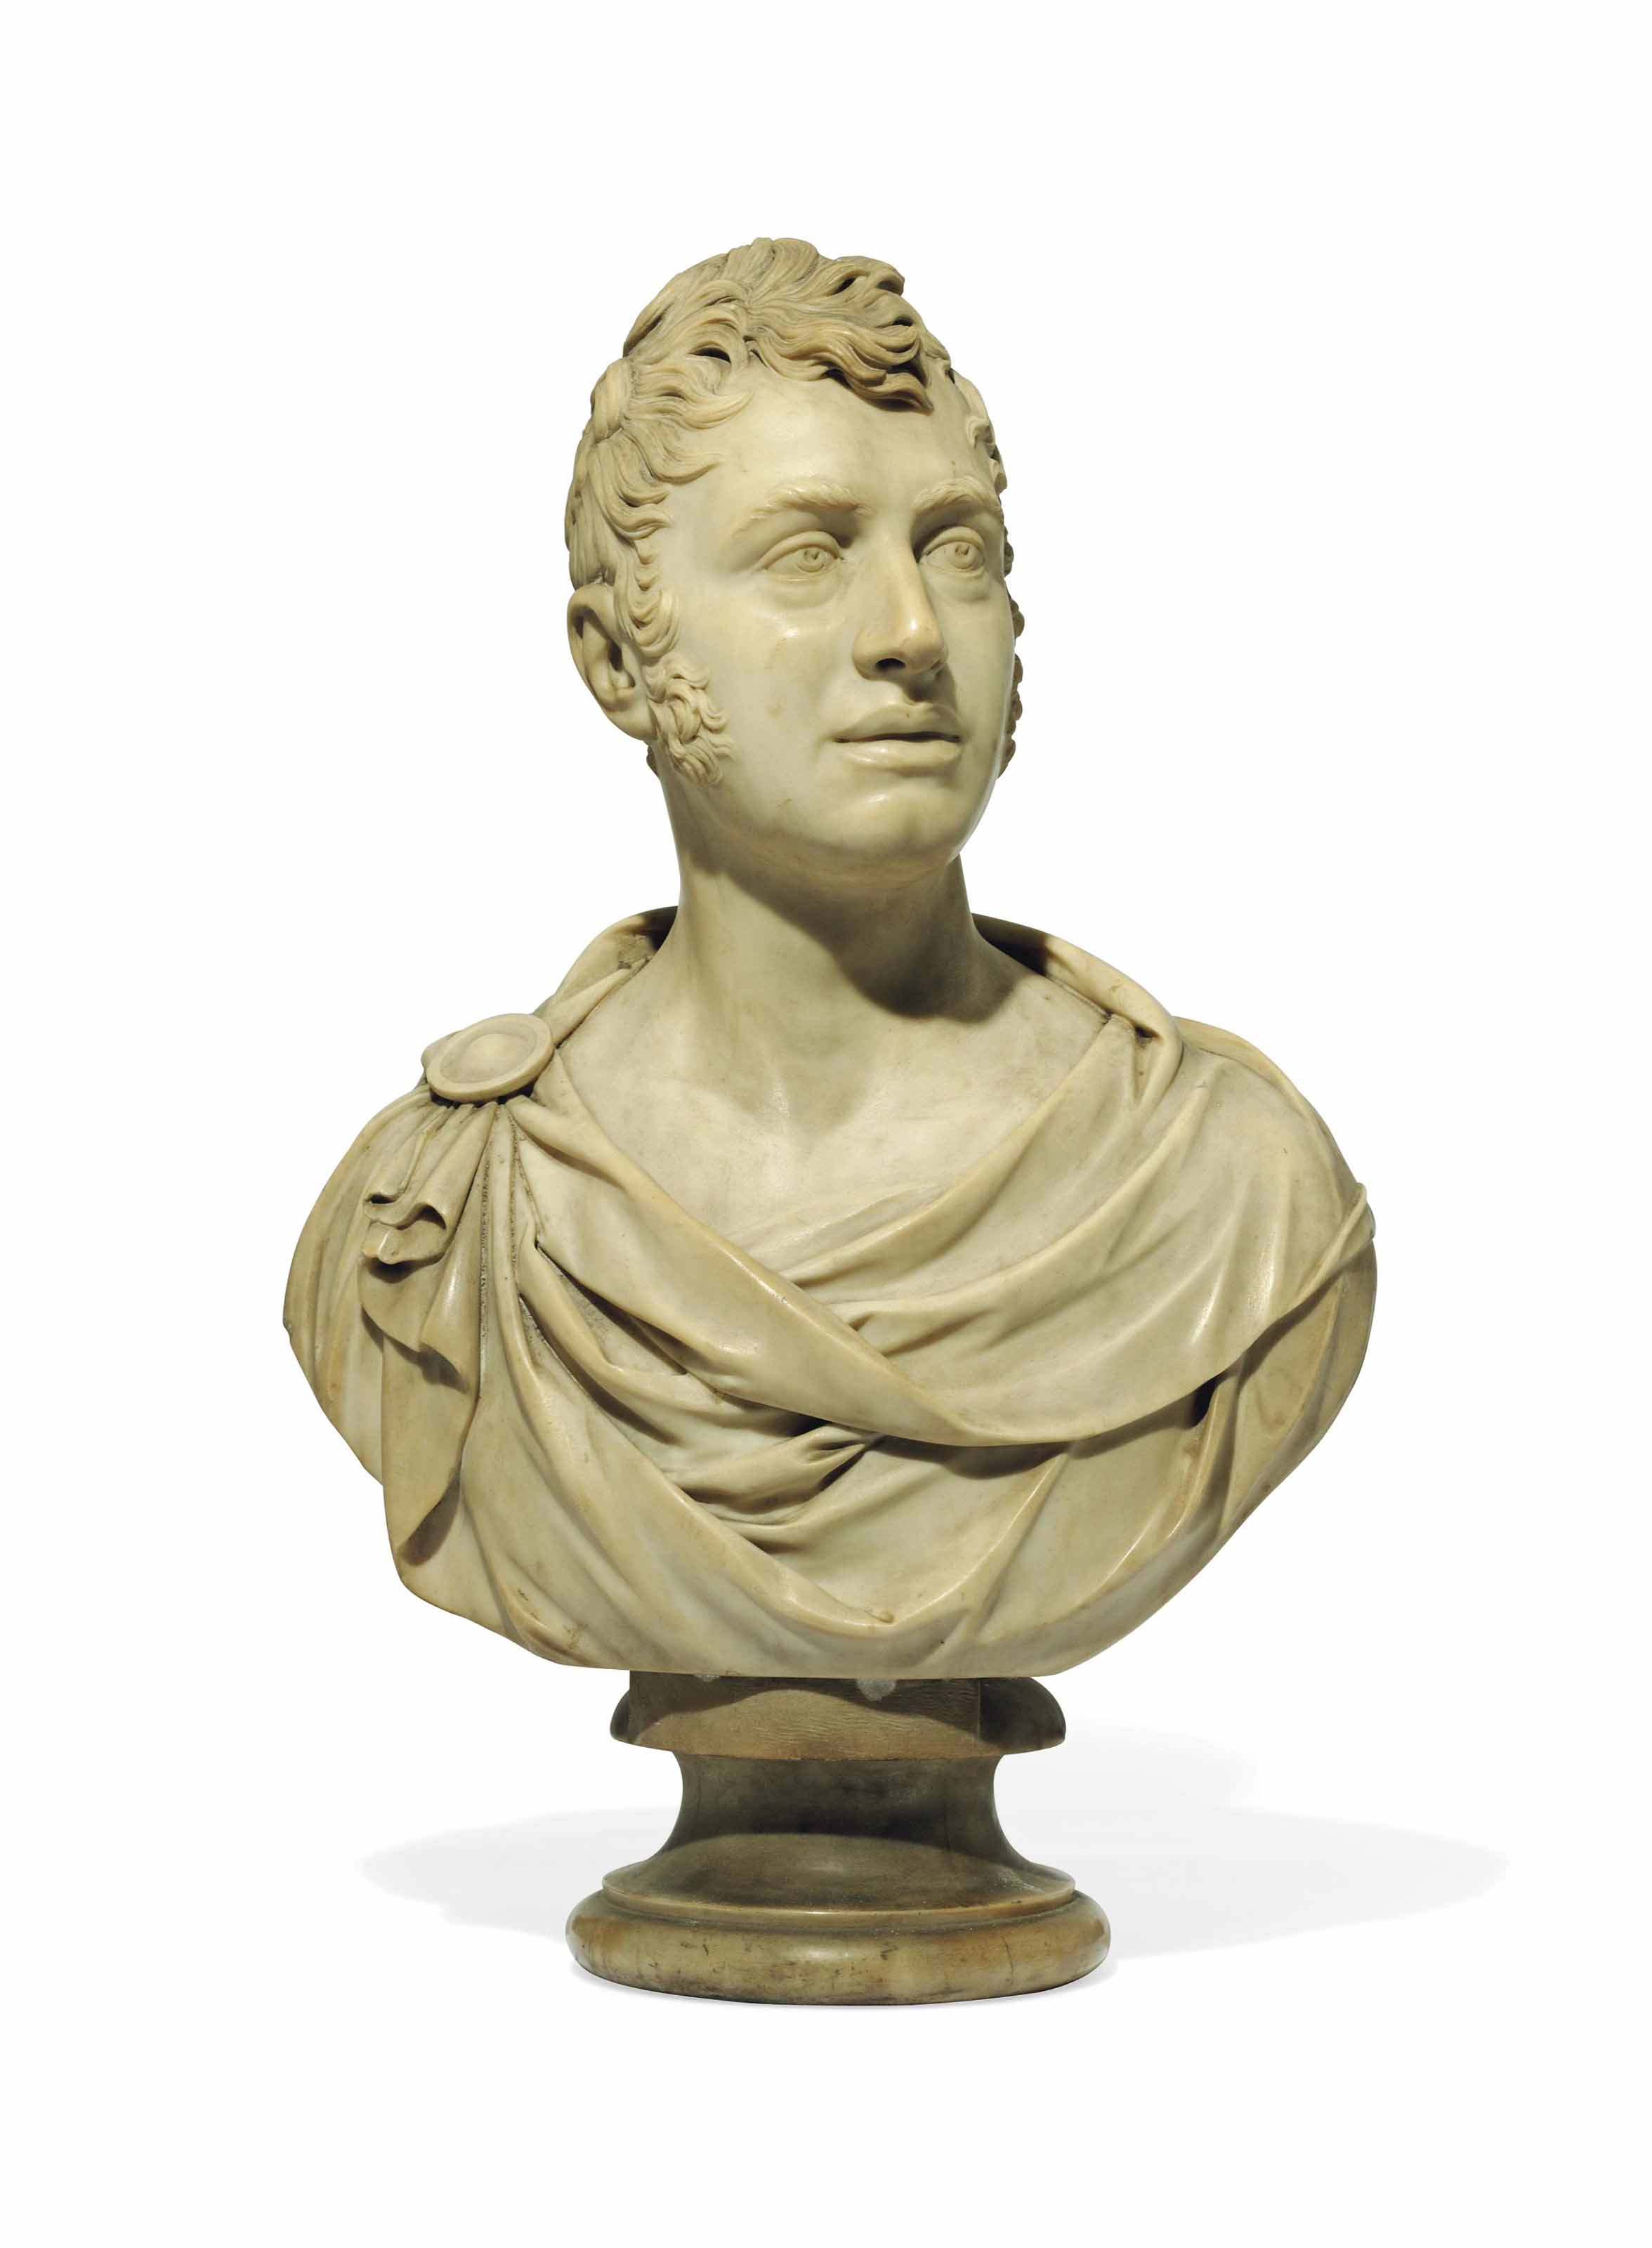 A CARVED MARBLE BUST OF A MAN, PROBABLY LORD GRANVILLE LEVESON-GOWER